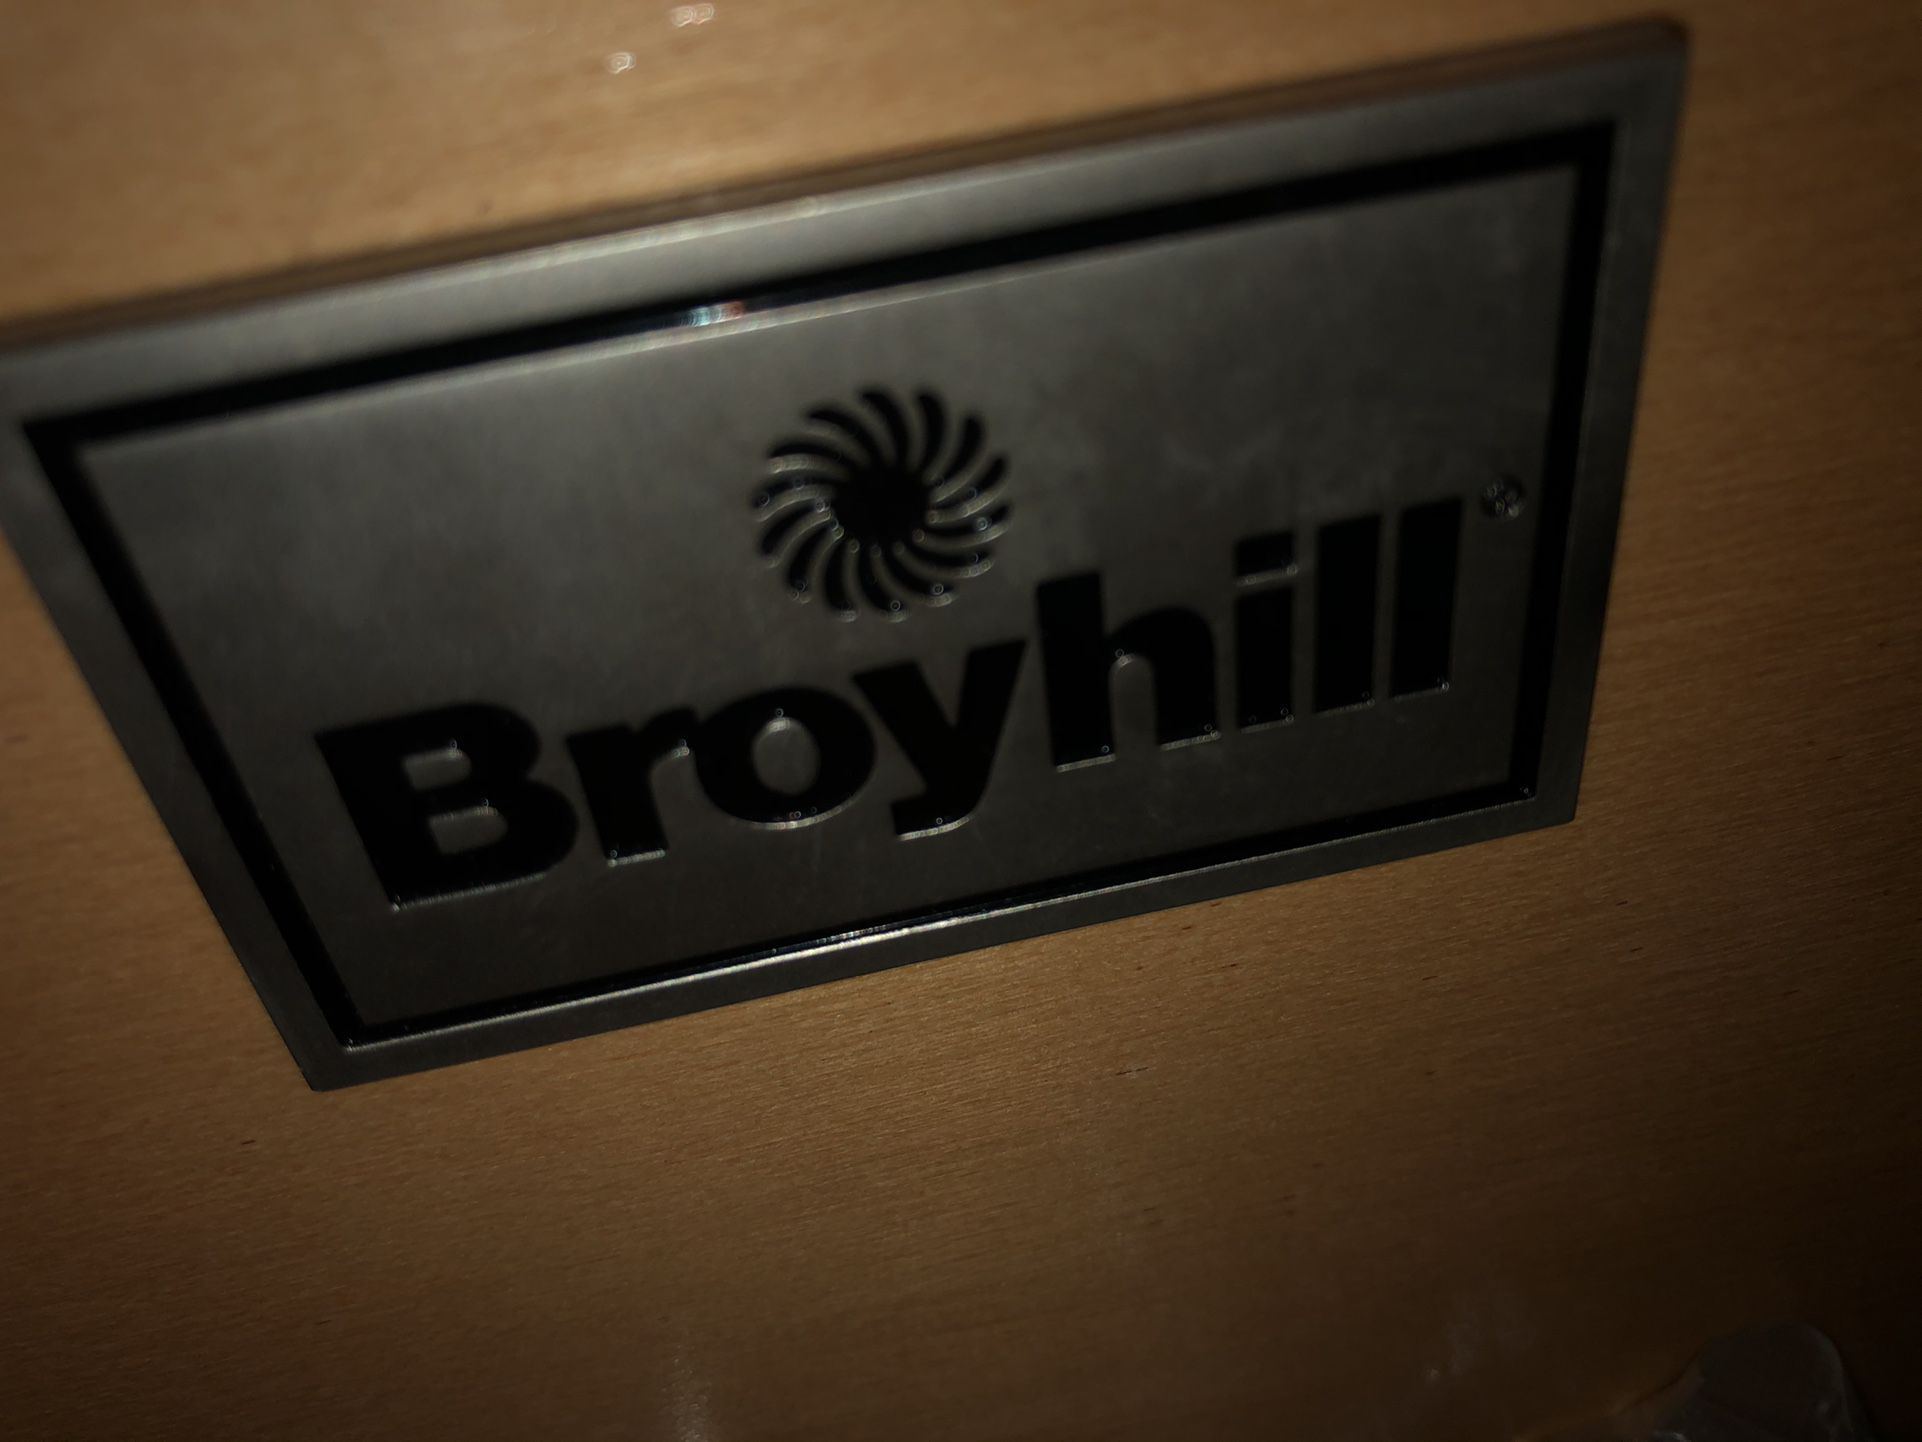 Broyhill Bedroom Set — With Lamps -Mattress Not Included